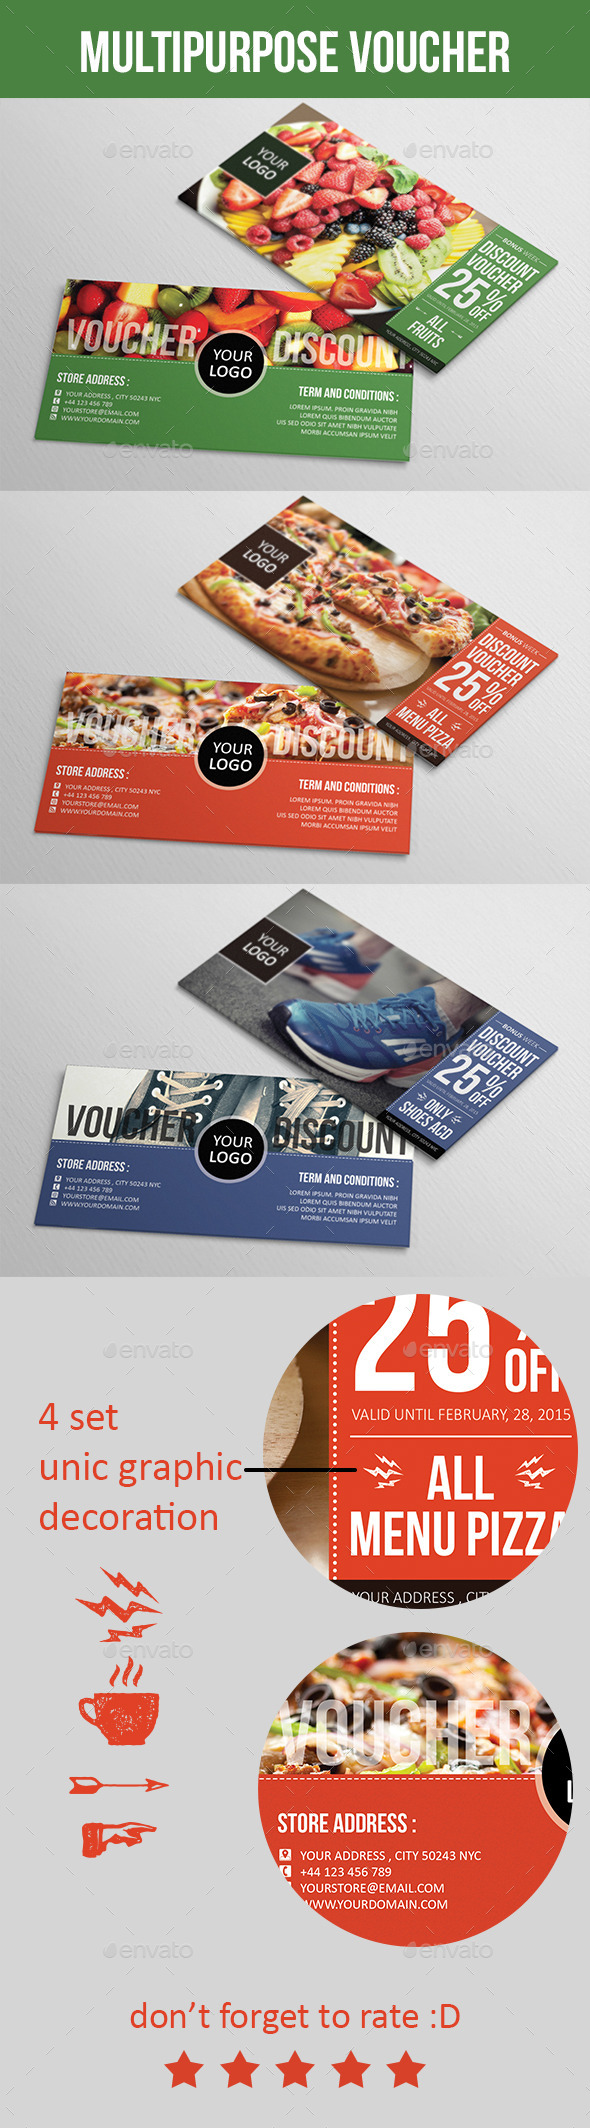 GraphicRiver Multipurpose Voucher 10002752